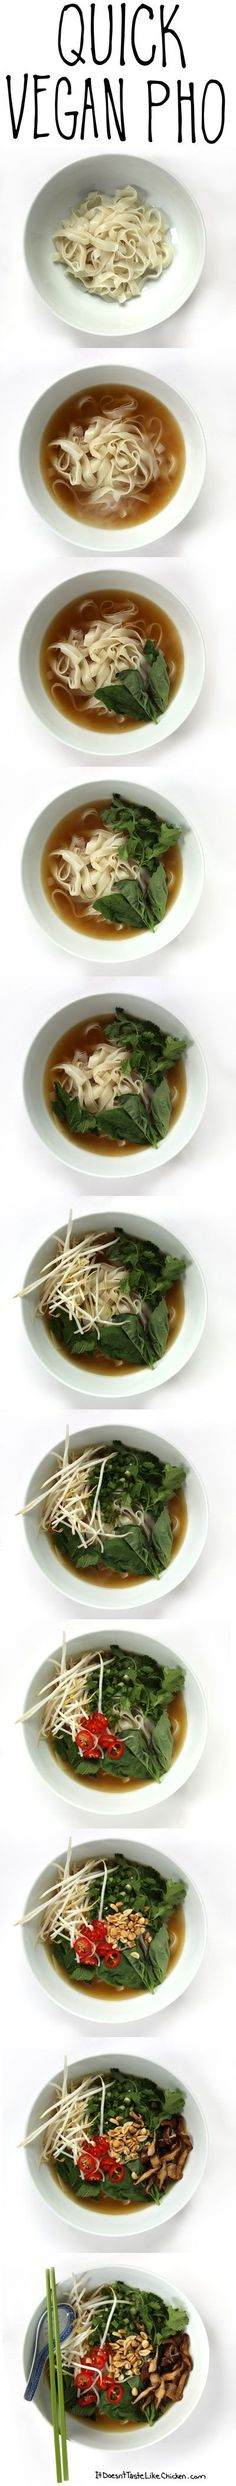 [V] Quick Vegan Pho. 30 minutes to make. Very nutritious. Great for fighting away winter colds! Vegan Soups, Vegan Dishes, Vegetarian Recipes, Vegan Food, Vegetarian Pho, Quick Vegan Meals, Whole Food Recipes, Cooking Recipes, Baker Recipes